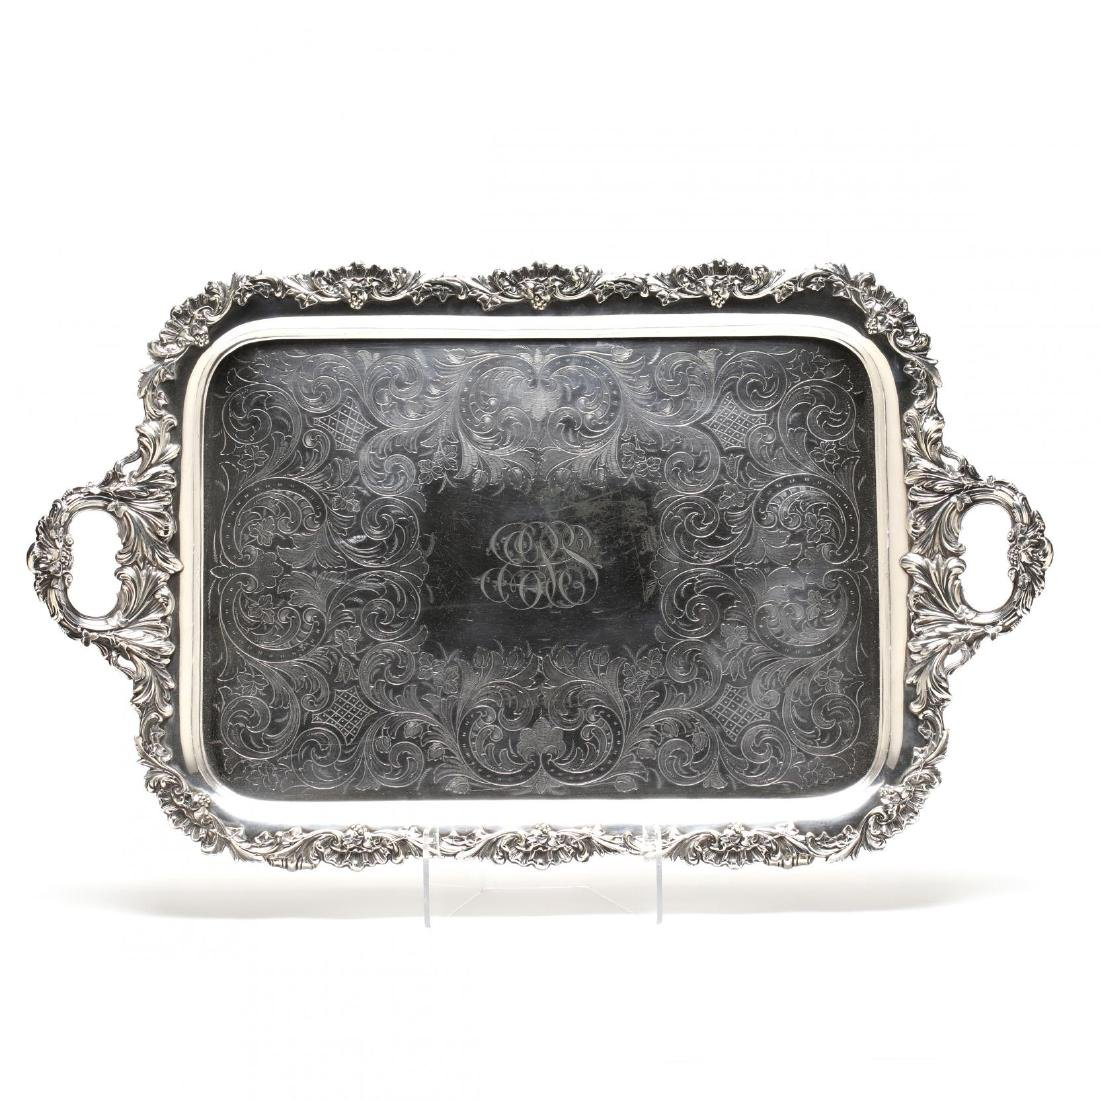 A Very Fine Large Silverplate Tray by Gorham